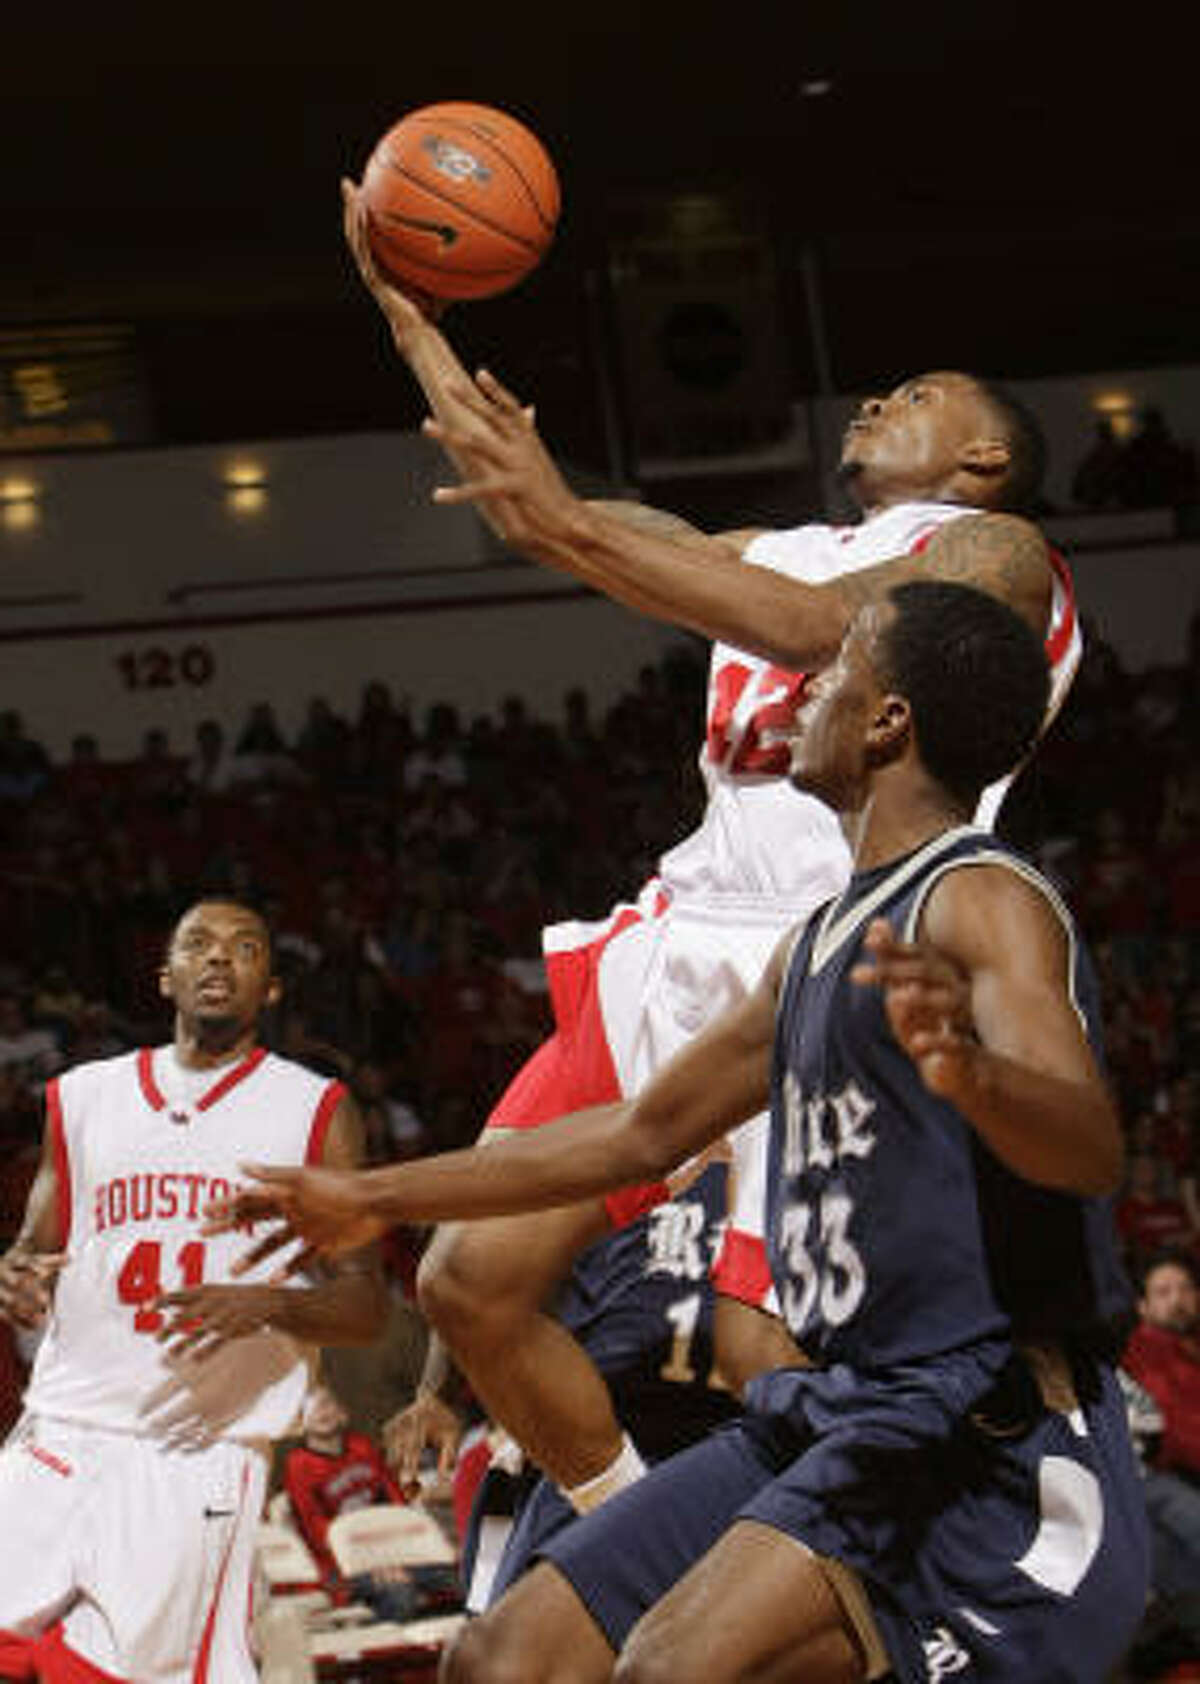 Aubrey Coleman (center) scored 27 points and grabbed 12 rebounds to lead UH to a 72-65 win over Rice on Saturday night at Hofheinz Pavilion.